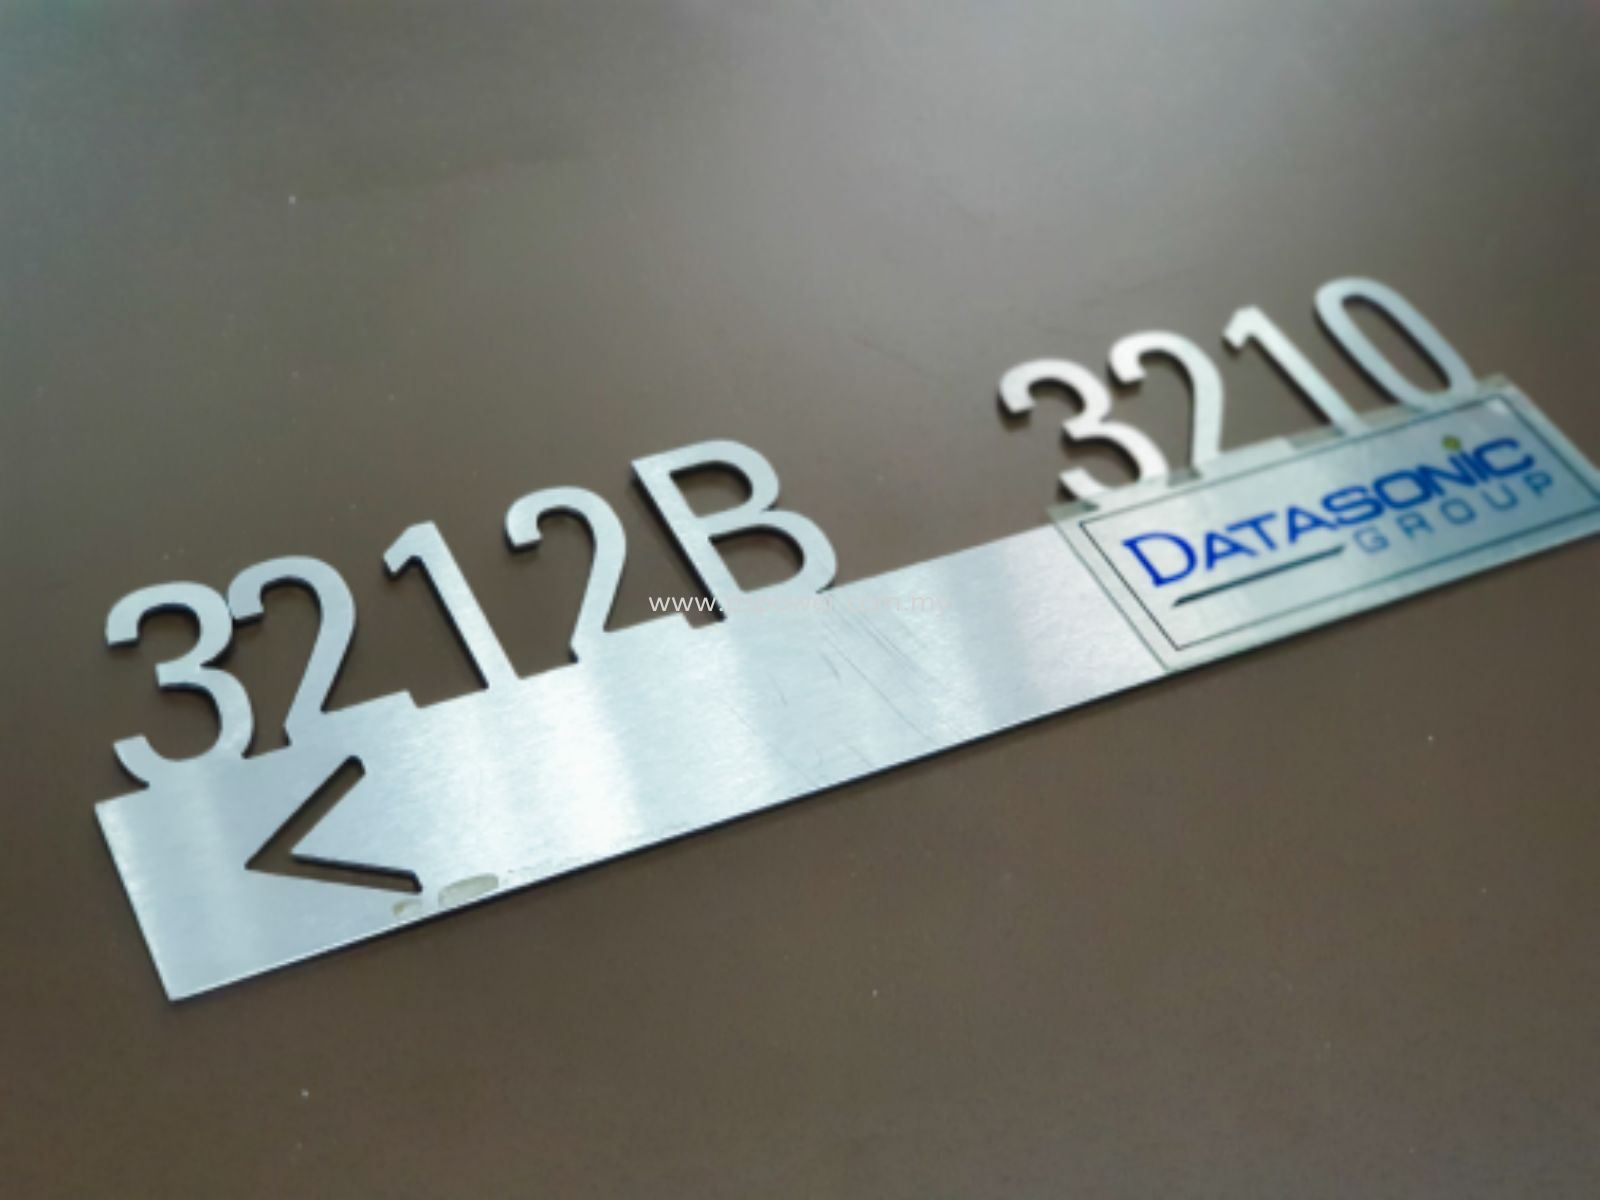 Laser Cut on Stainless Steel - Door Signage